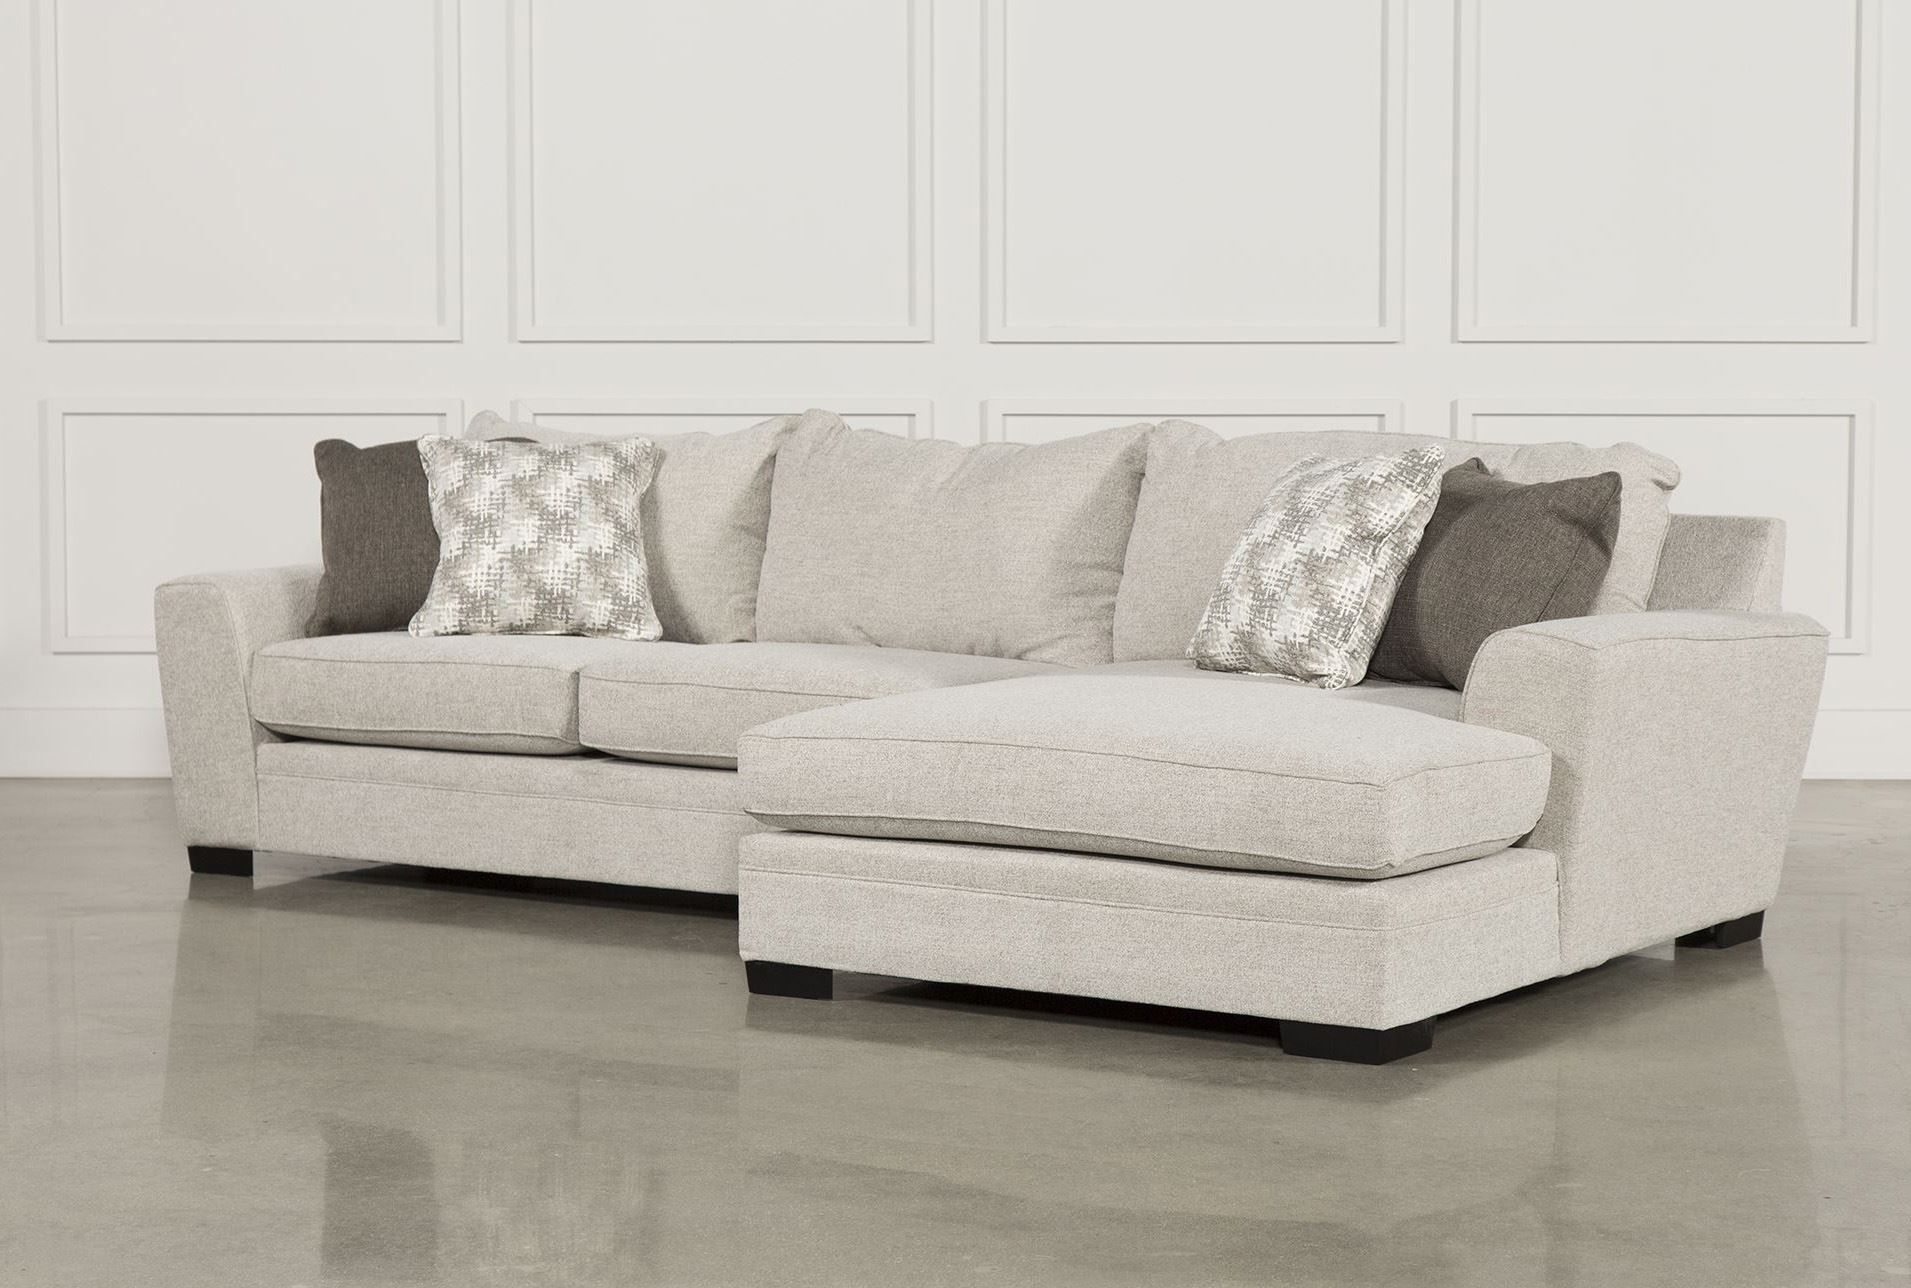 Delano 2 Piece Sectional W/raf Oversized Chaise, Beige, Sofas for Aurora 2 Piece Sectionals (Image 16 of 30)